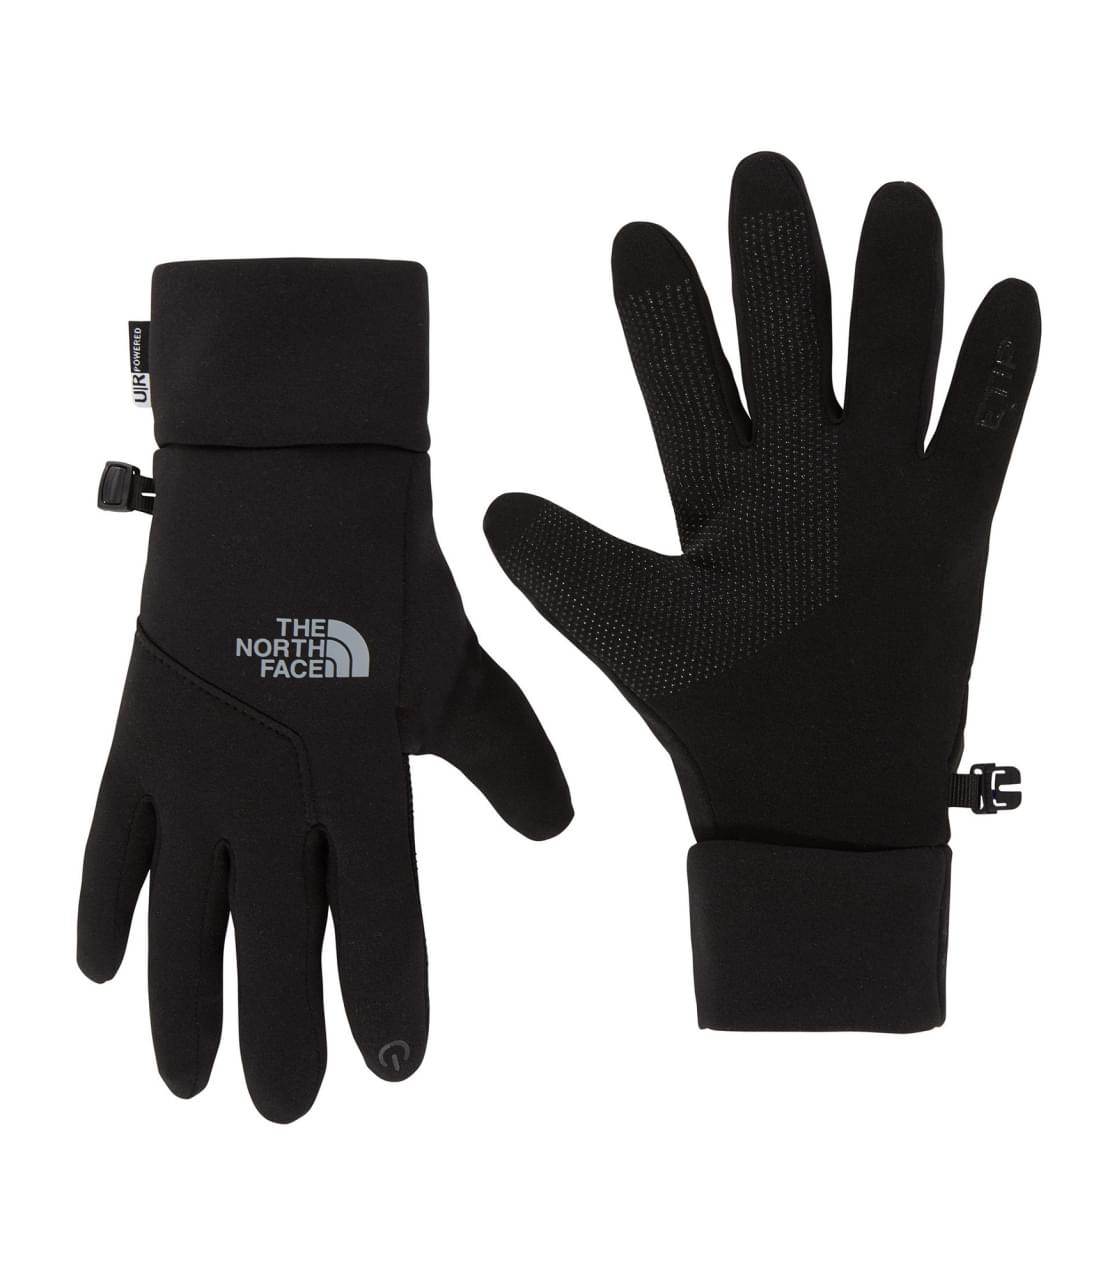 The North Face Etip Handschoenen Dames